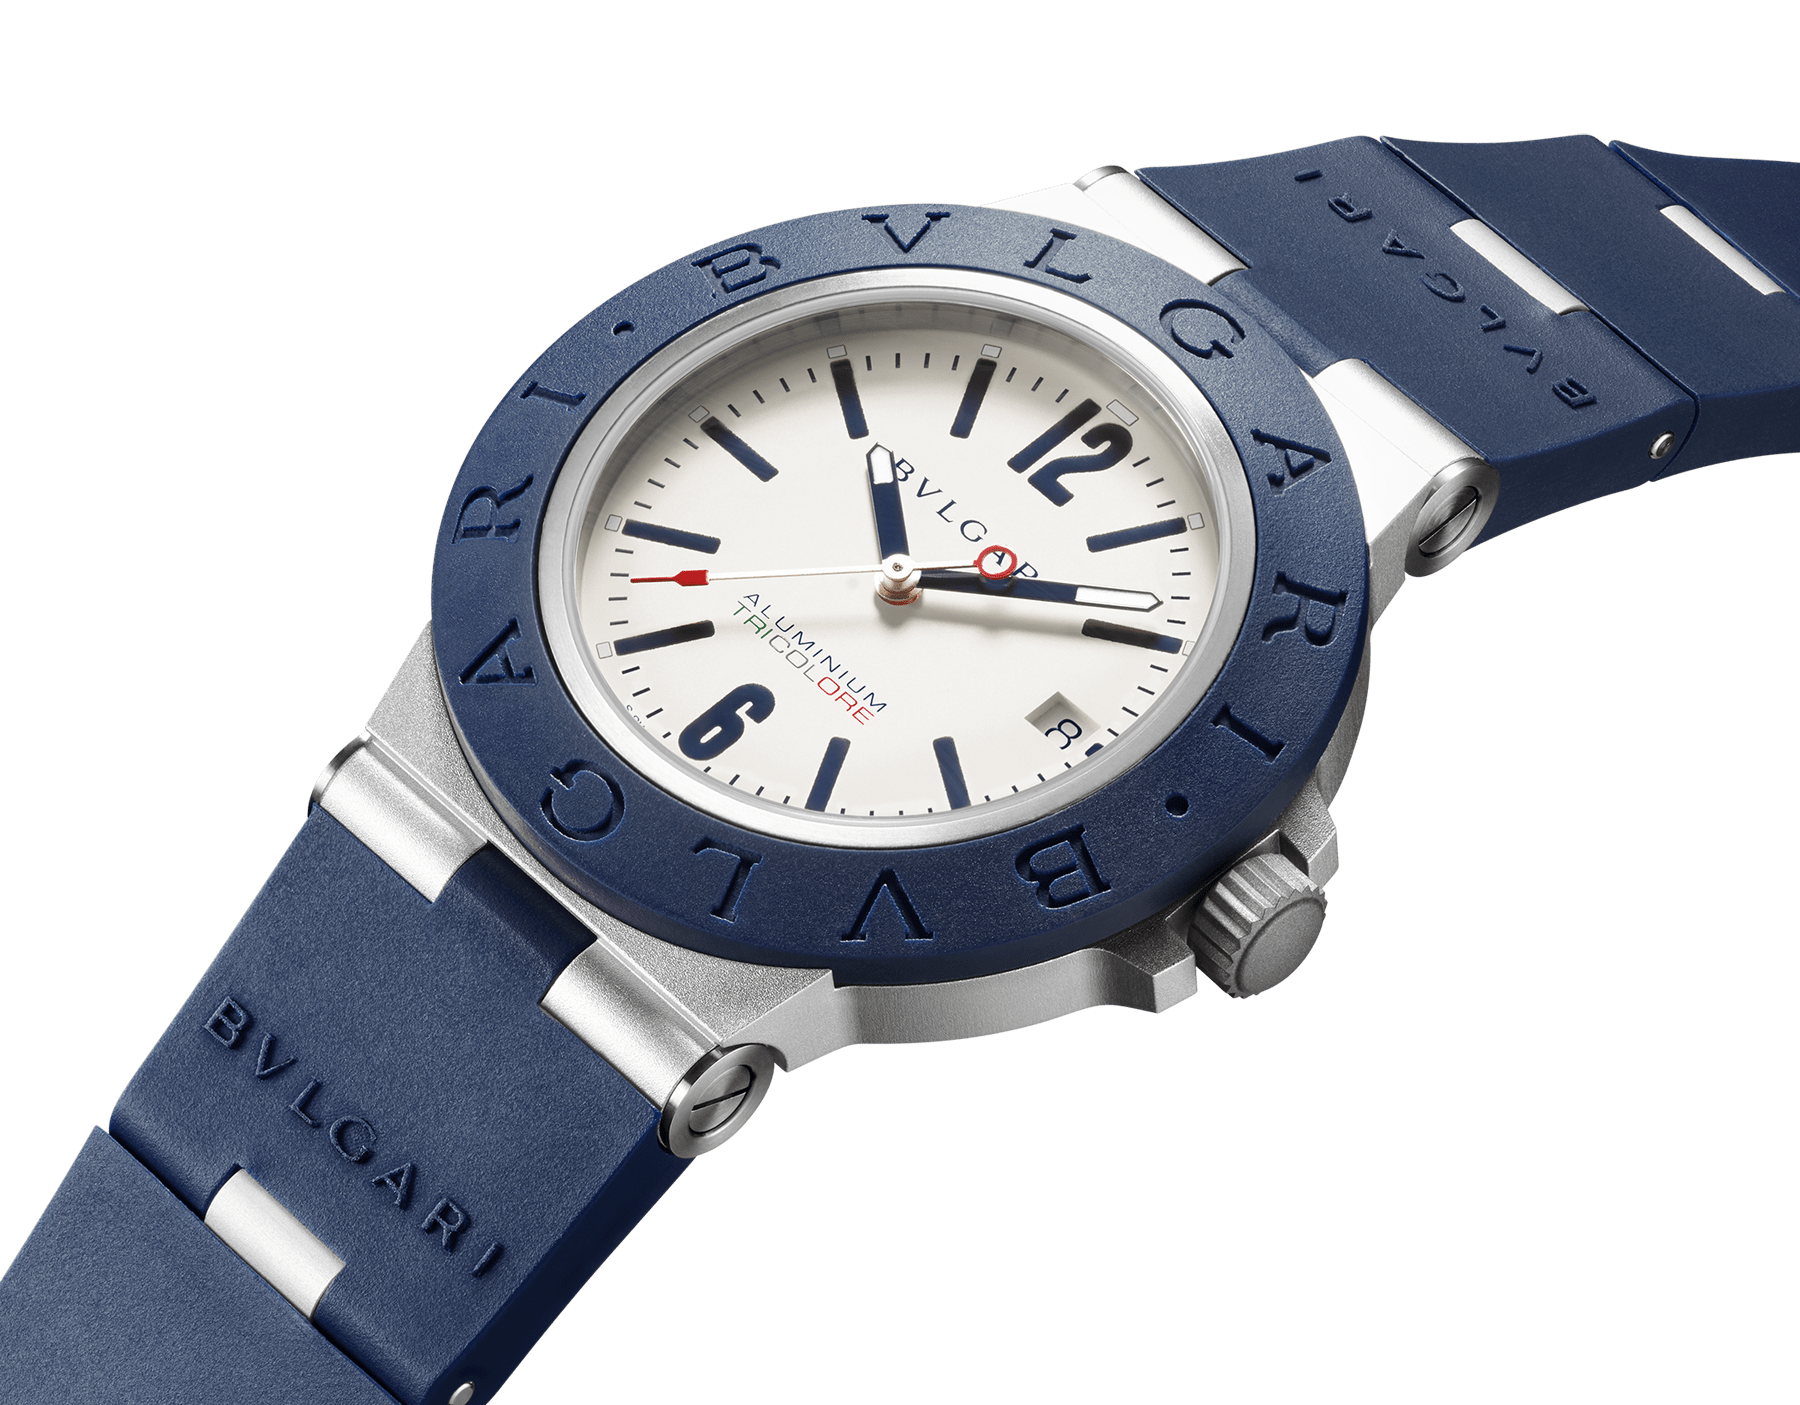 Bvlgari Aluminium Tricolore watch with mechanical movement, automatic winding and date, 40 mm aluminium and titanium case, blue rubber bezel with BVLGARI BVLGARI engraving, warm grey dial with special TRICOLORE logo, and blue rubber bracelet. Water-resistant up to 100 metres. Limited Edition 103514 image 2